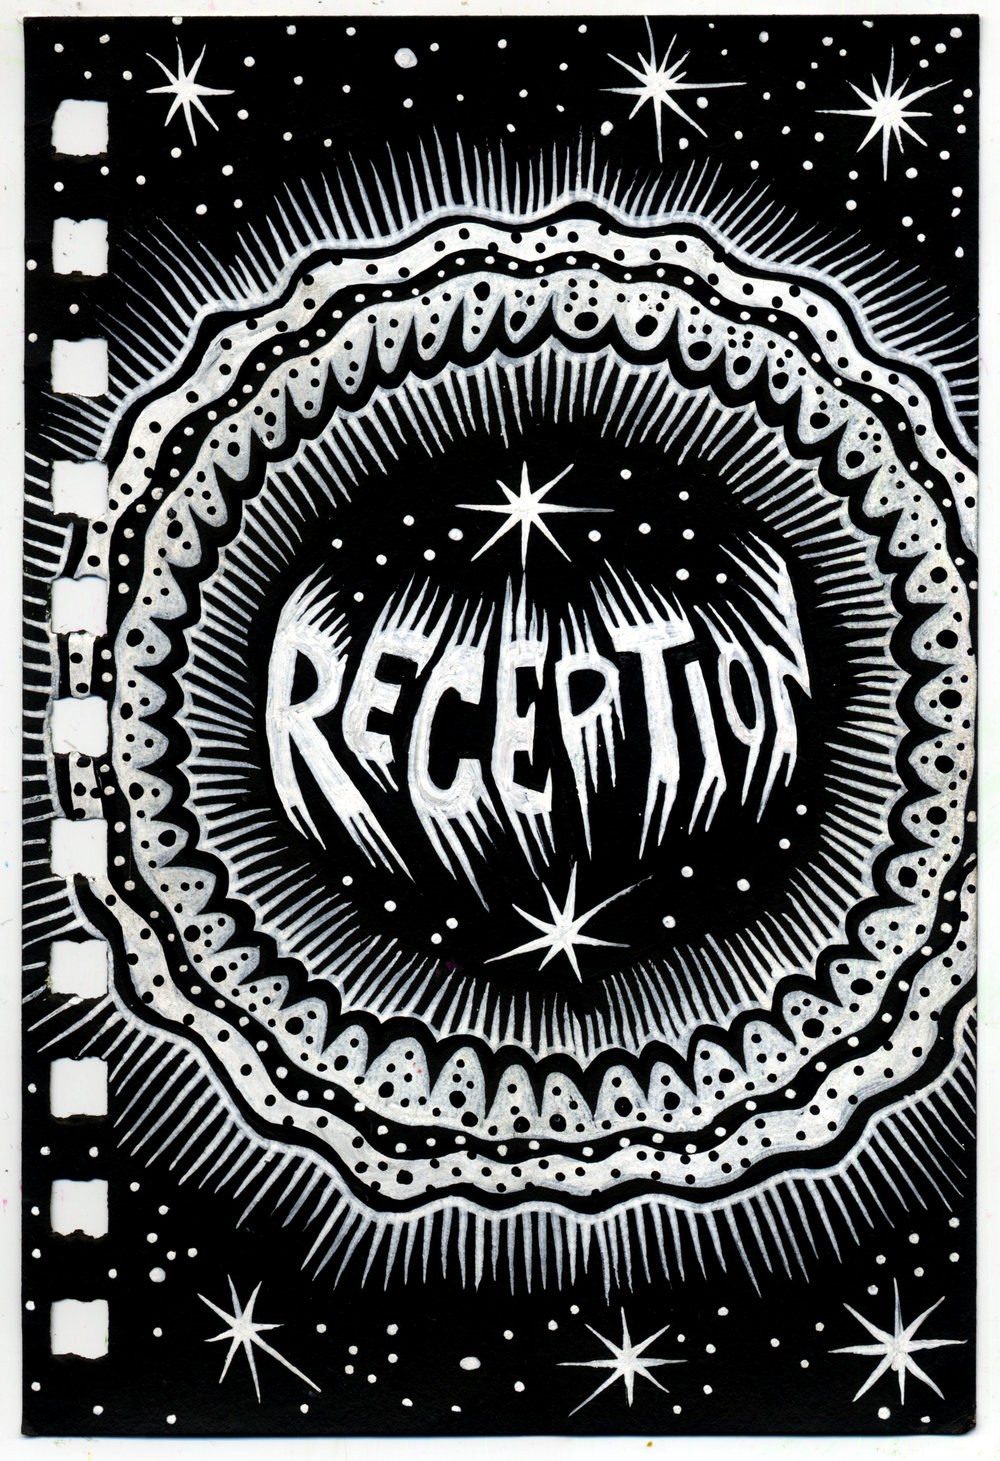 Reception (Mandala)